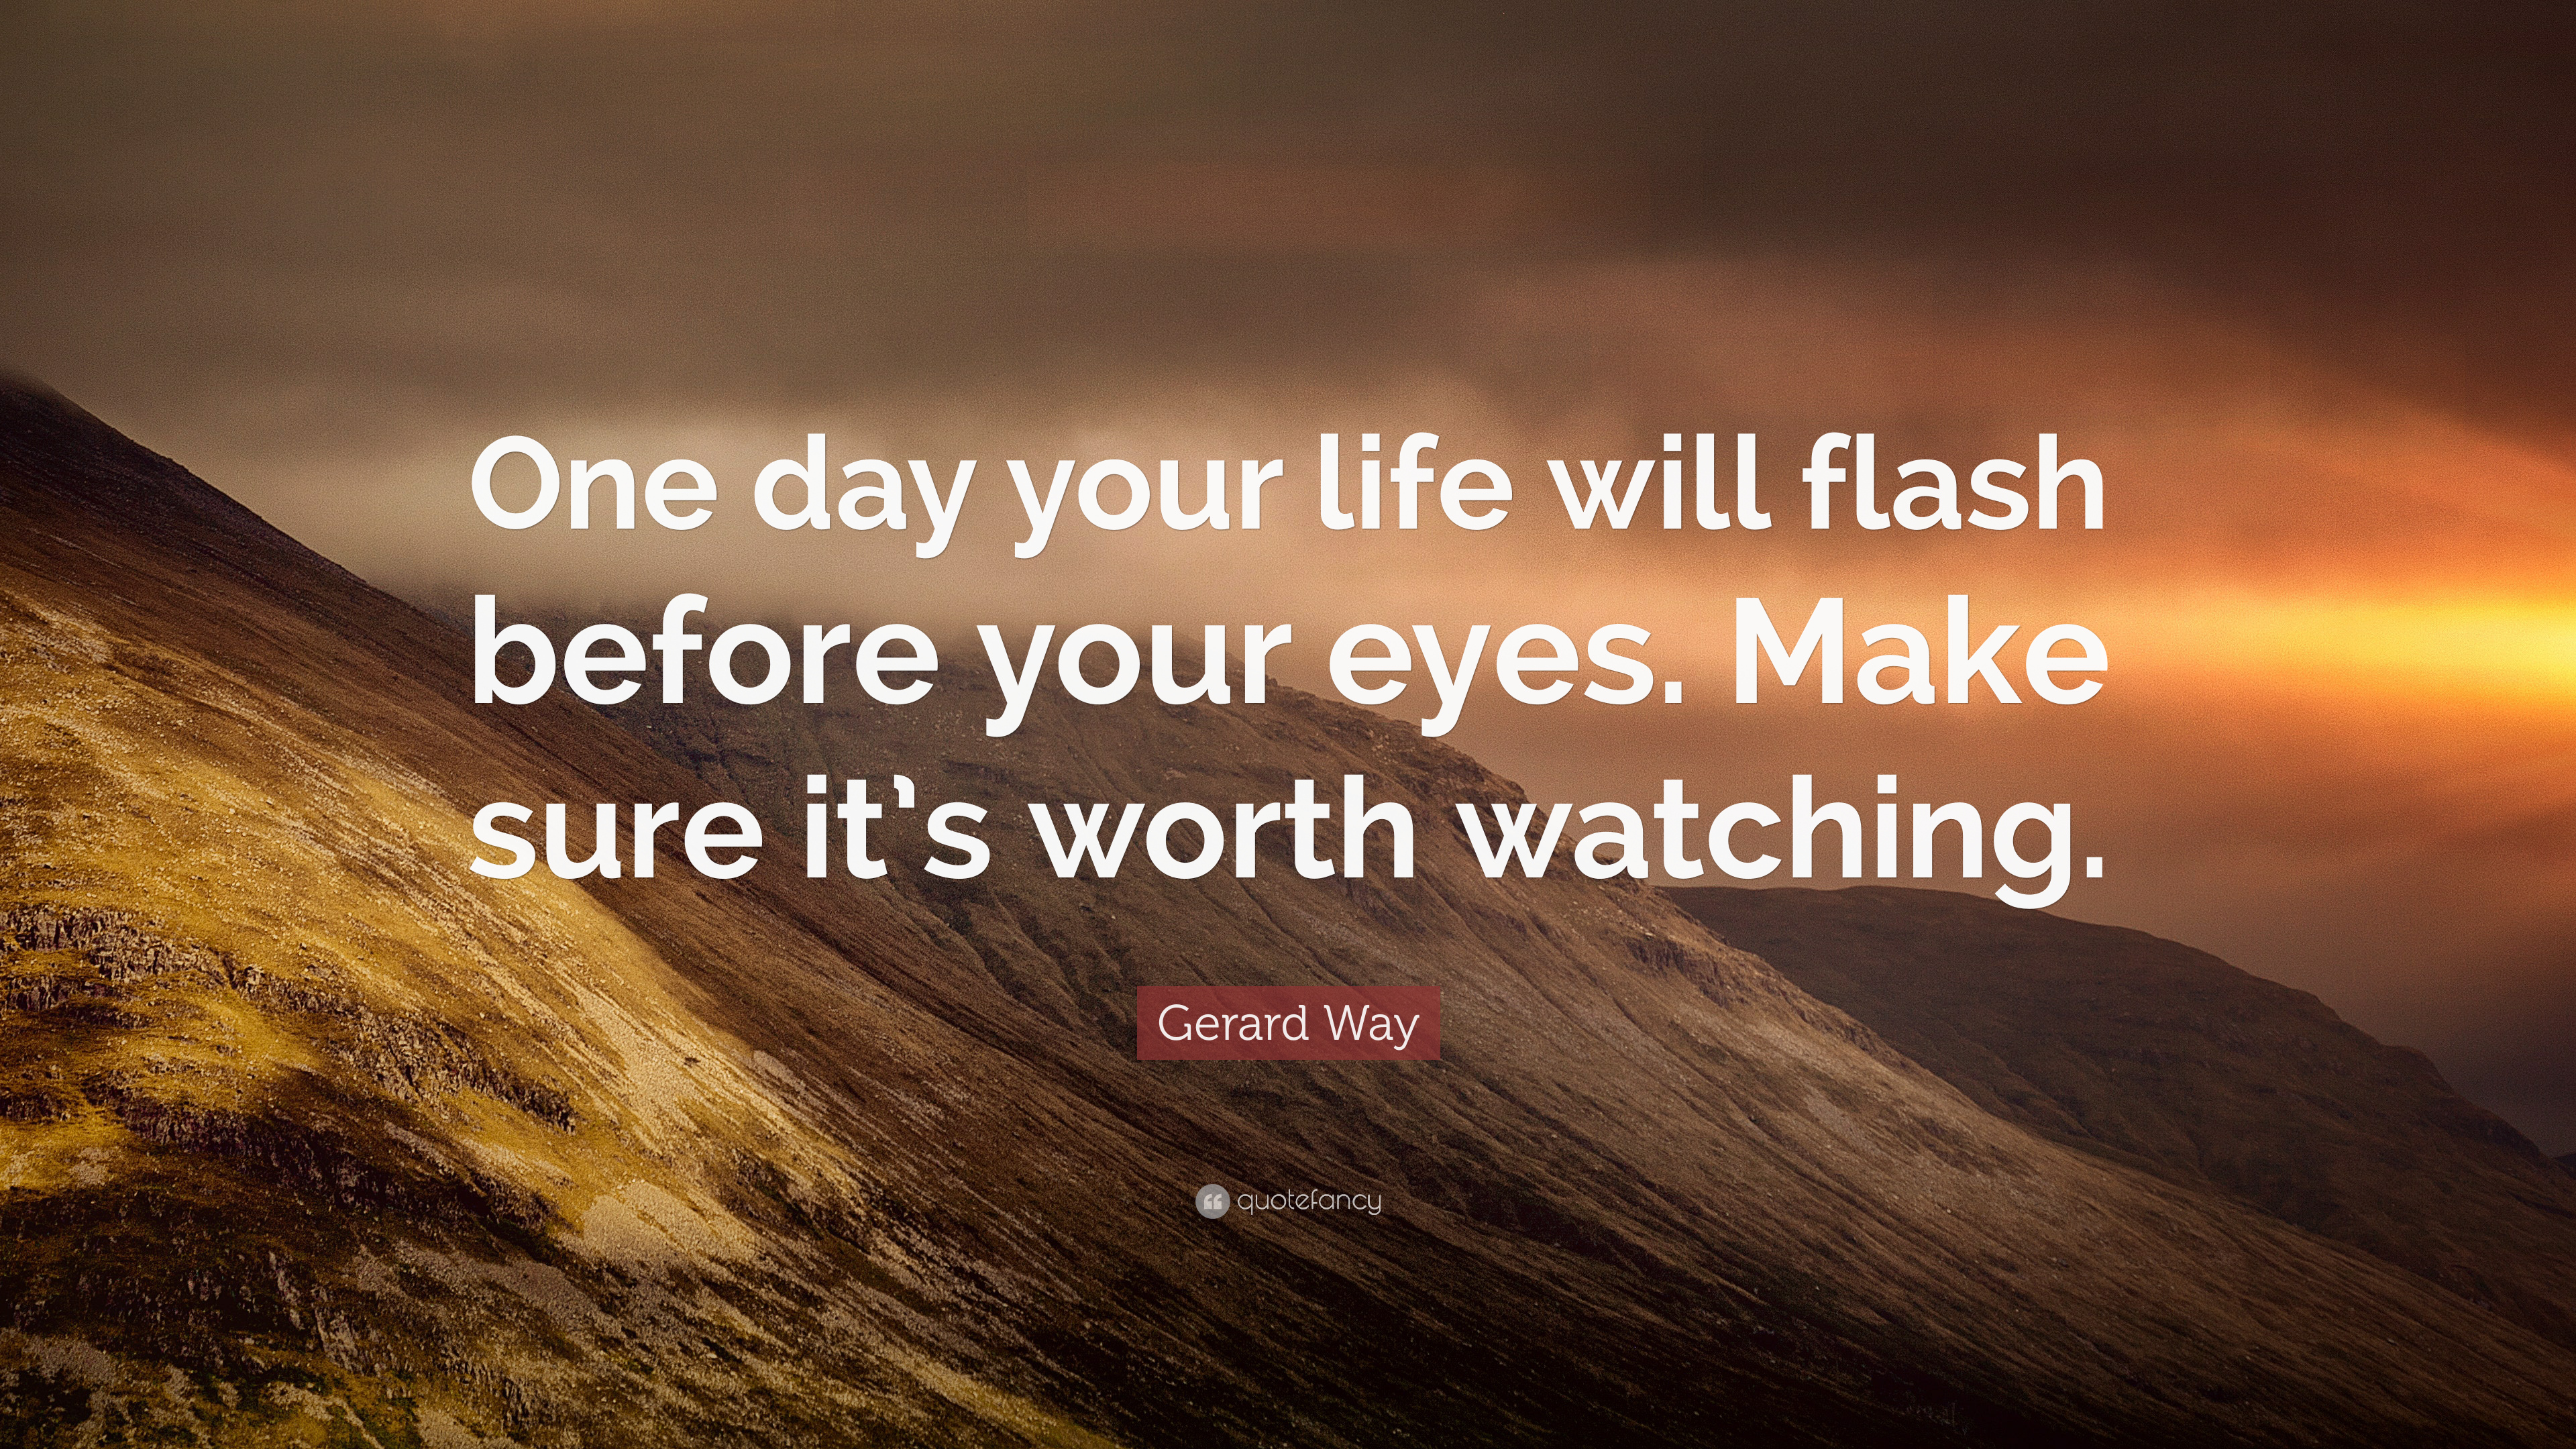 """Gerard Way Quote: """"One day your life will flash before your eyes. Make sure  it's worth watching."""" (24 wallpapers) - Quotefancy"""